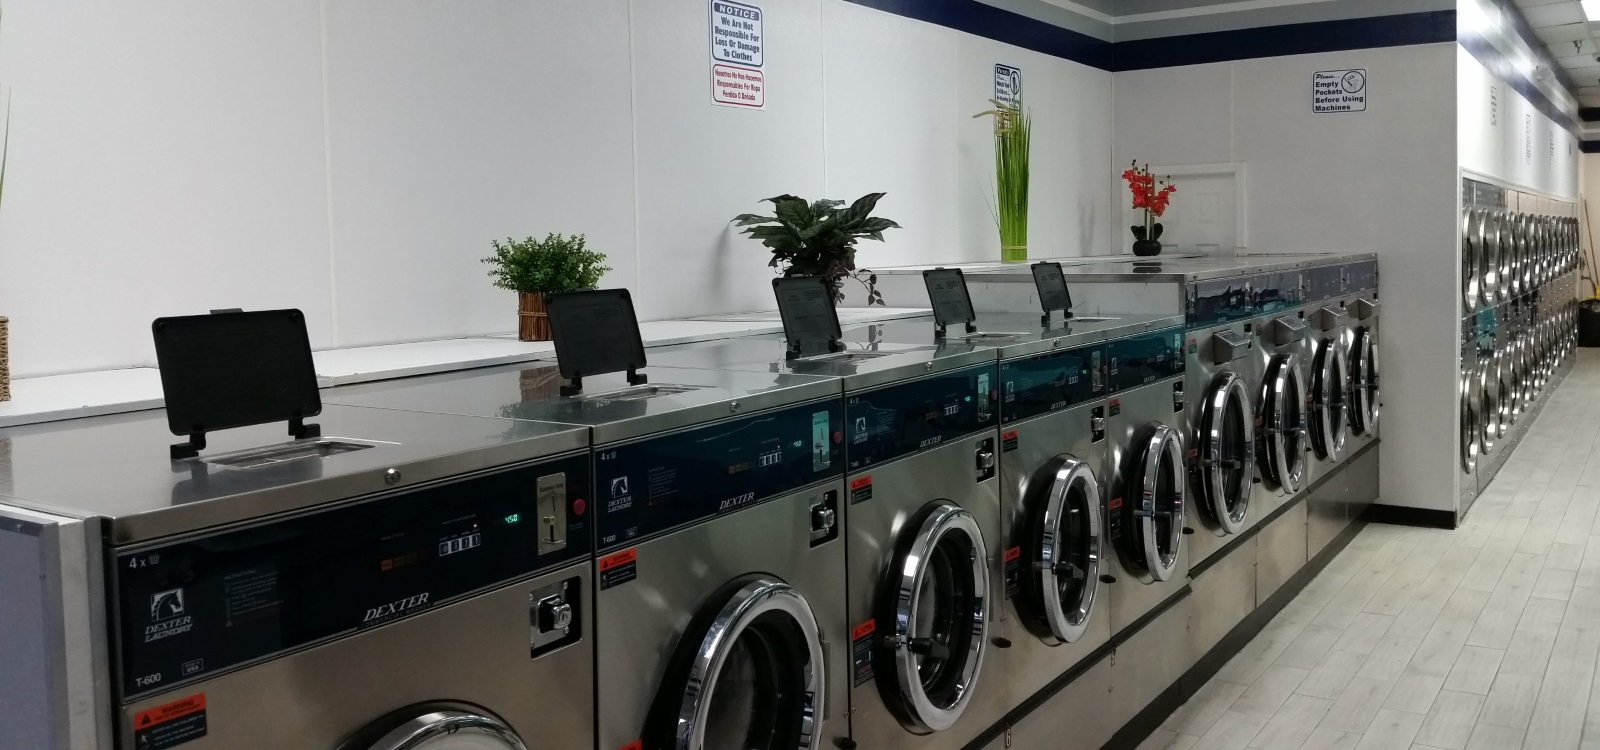 The Laundry Room Webpagedepot